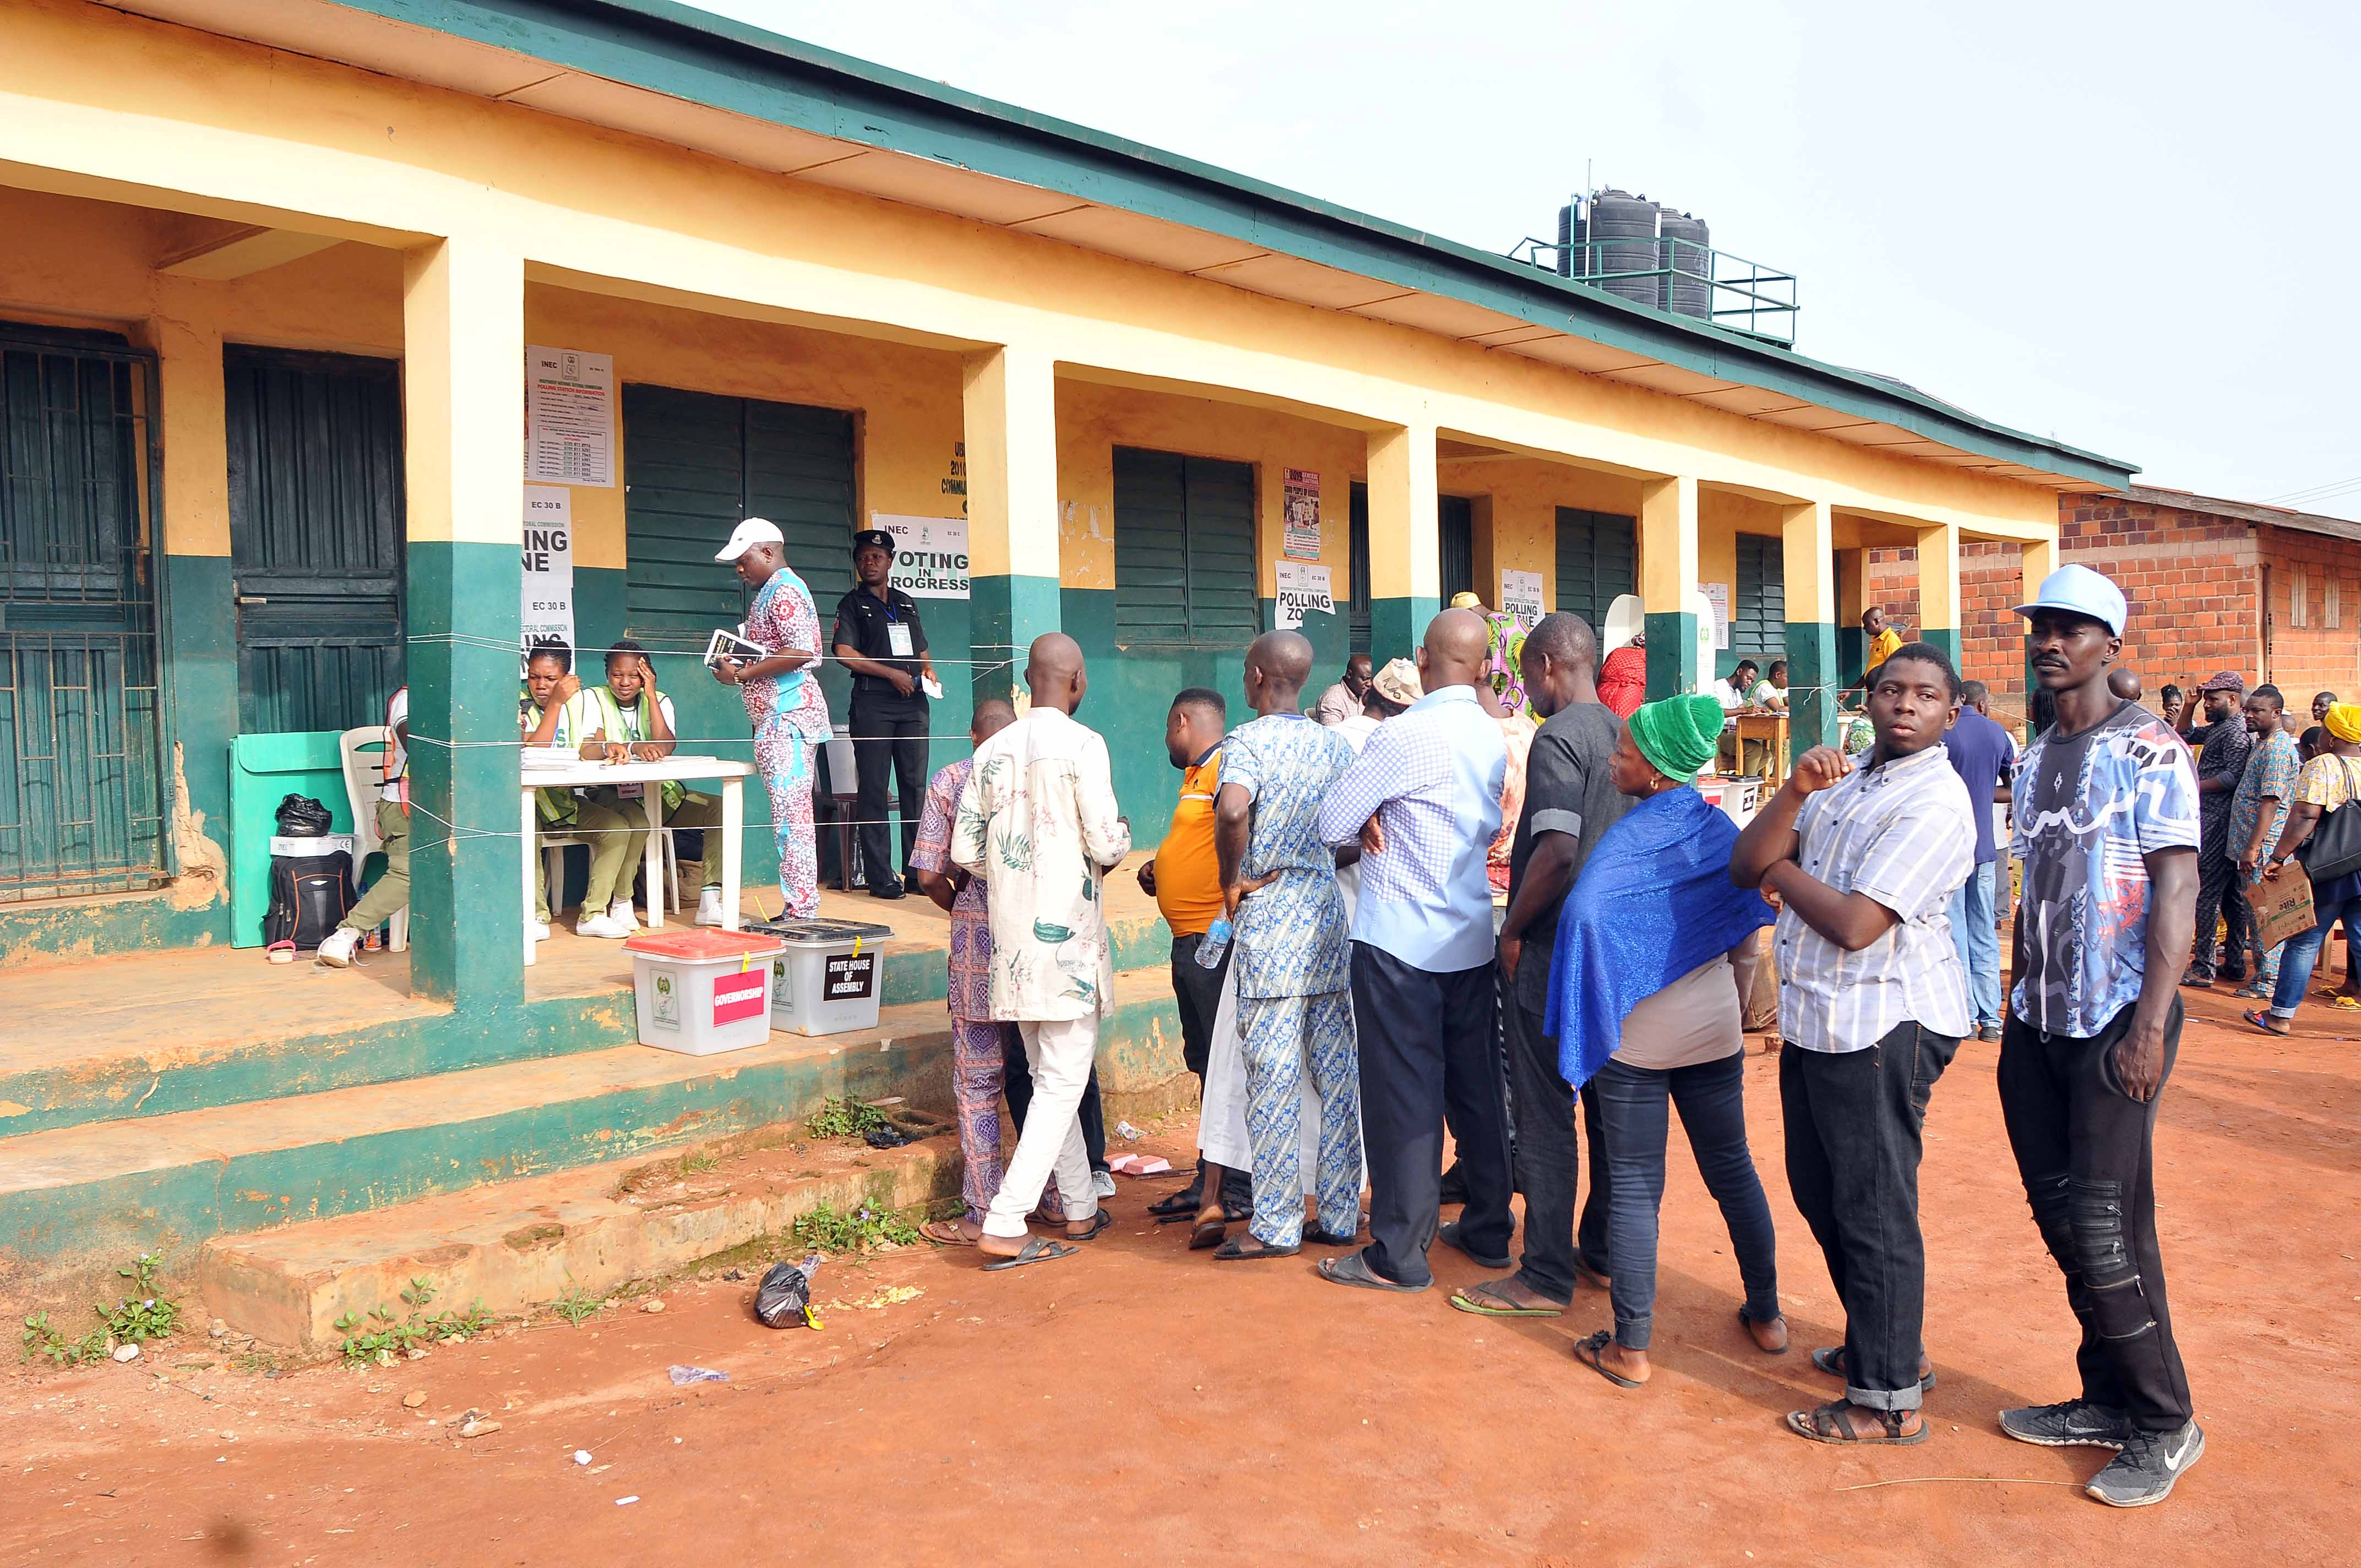 FILE: Voters on queue at a polling unit